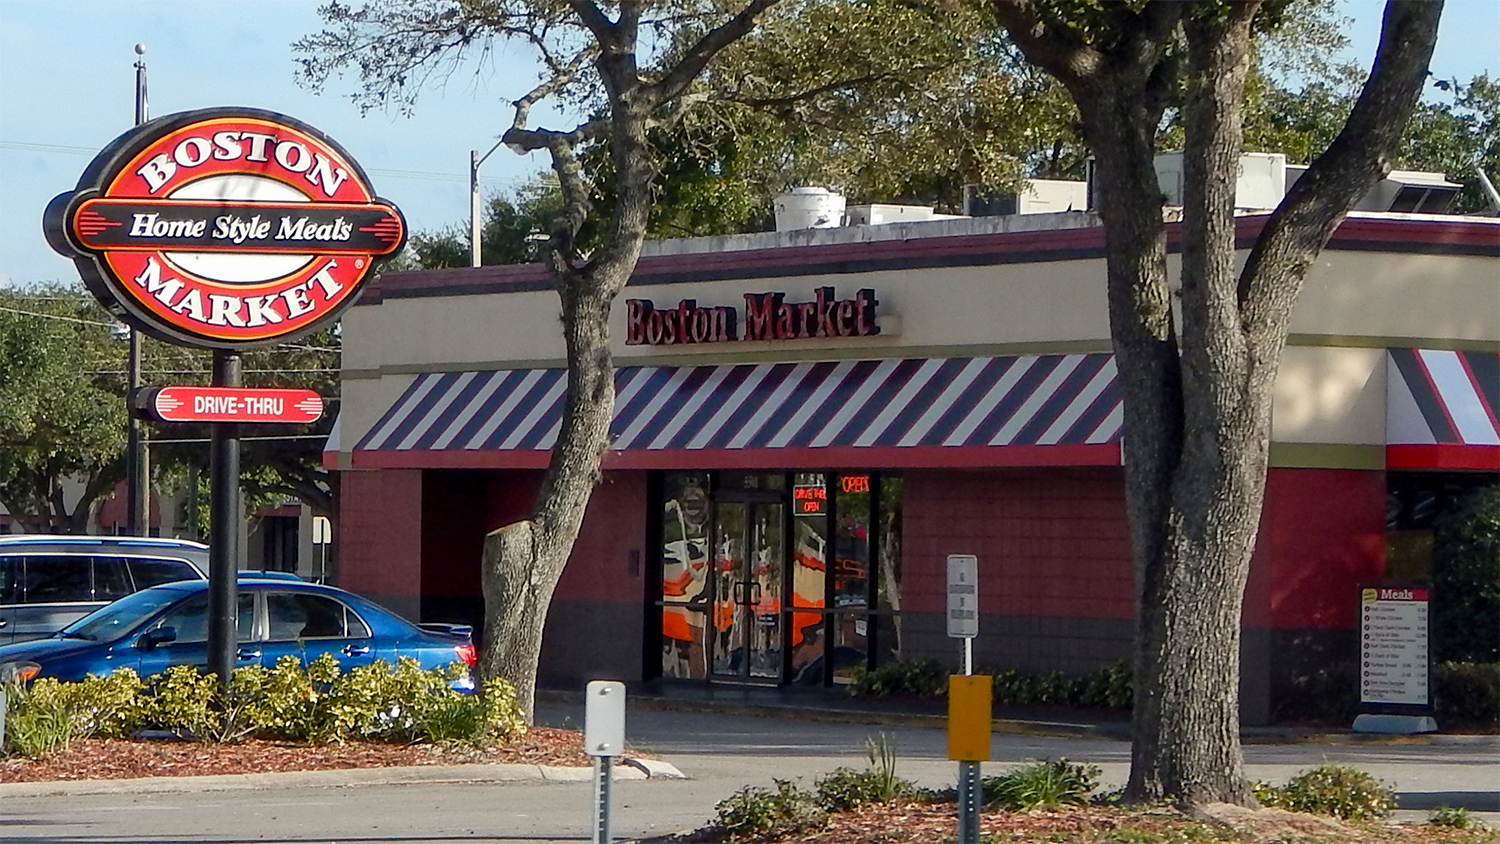 Boston Market on East Fowler in Tampa, Florida/photonews247.com